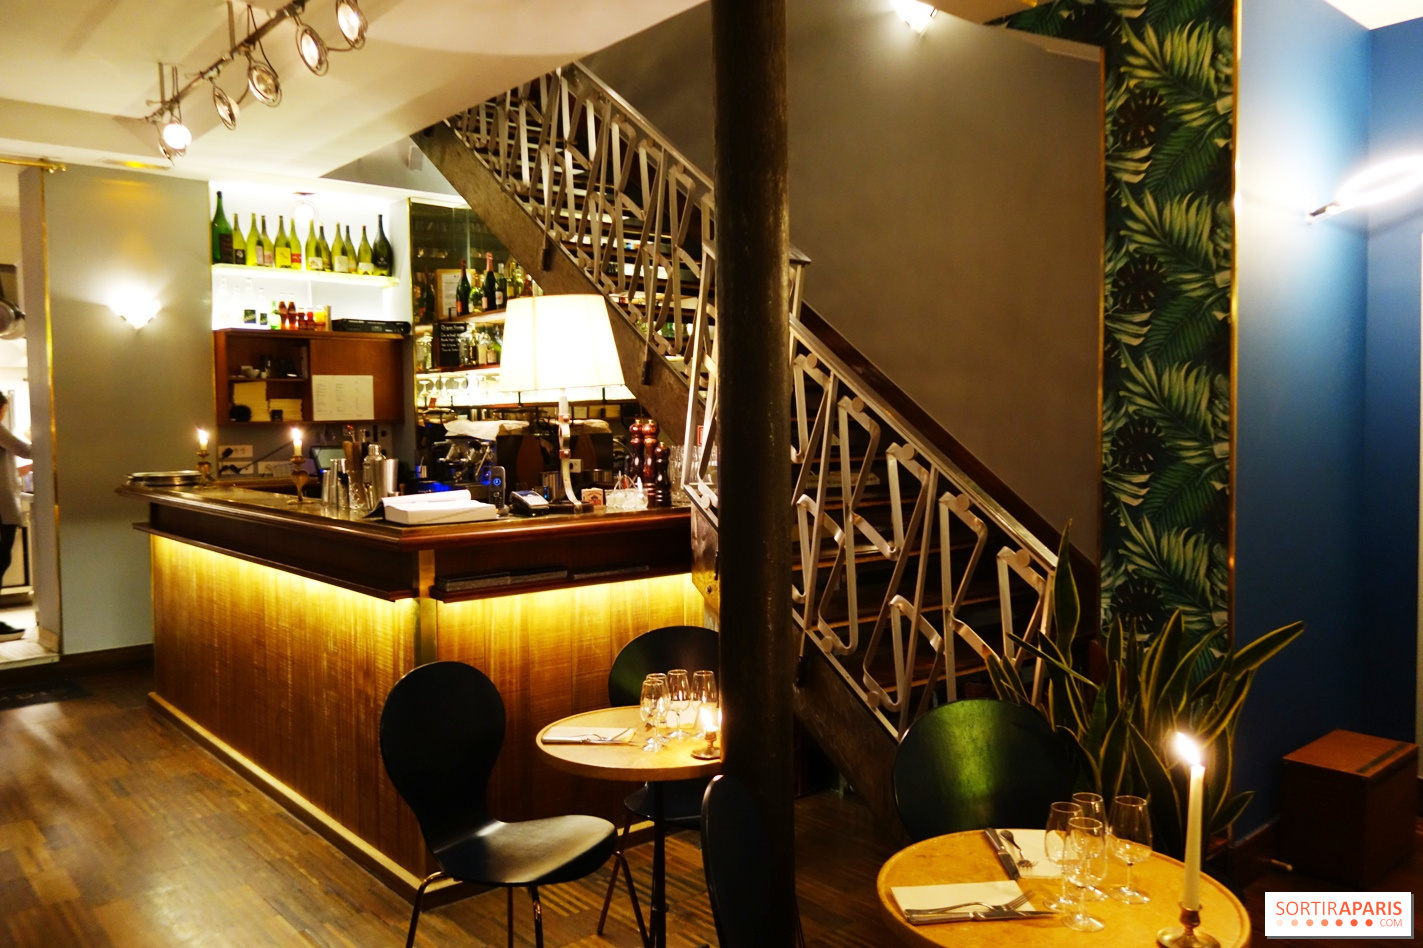 14 Paradis In Paris Bistronomic Cuisine By Hugo Pinto And